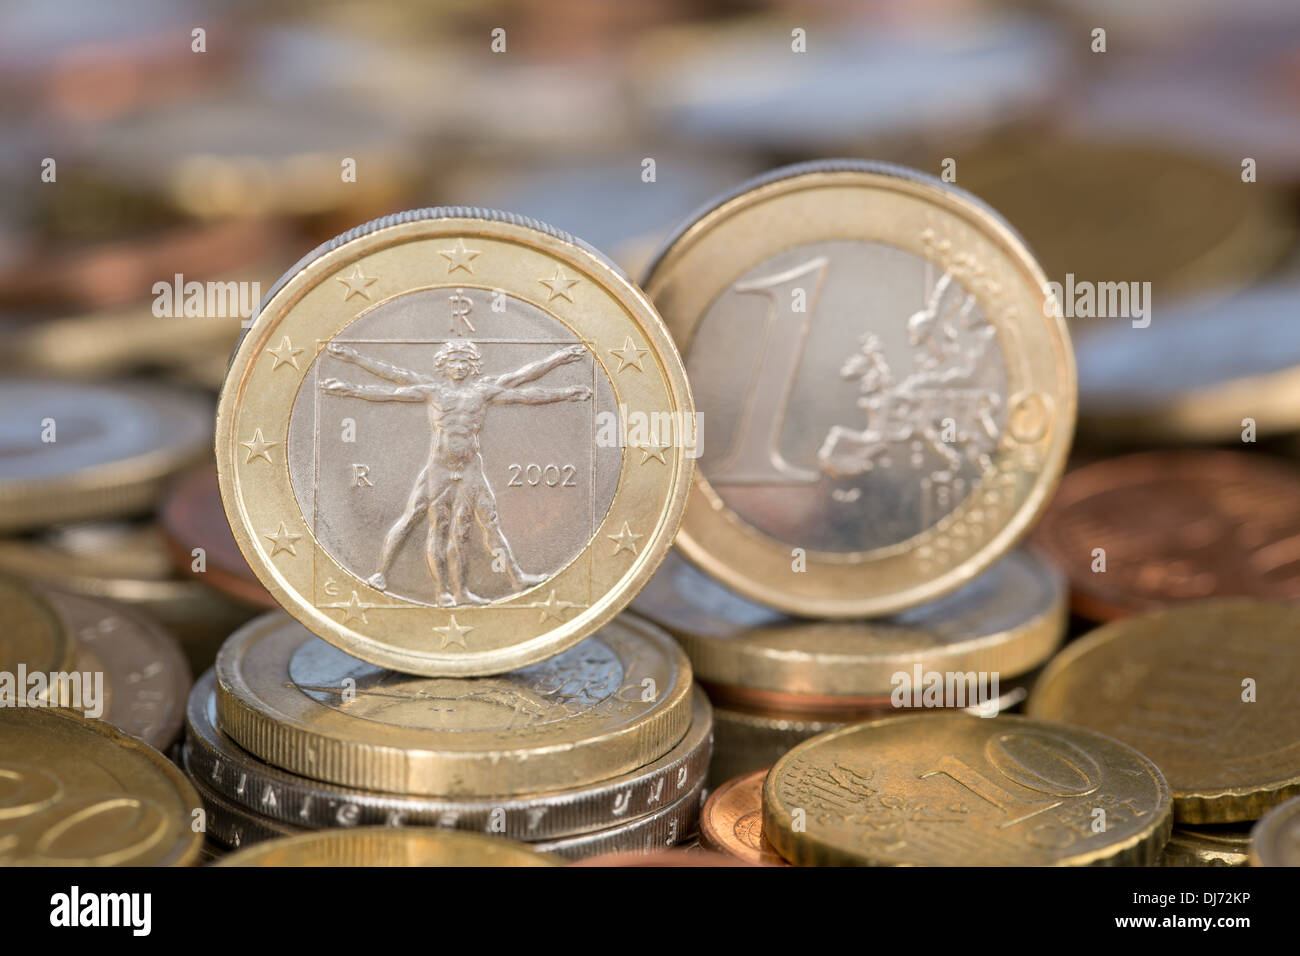 A one Euro coin from the EU member country Italy - Stock Image